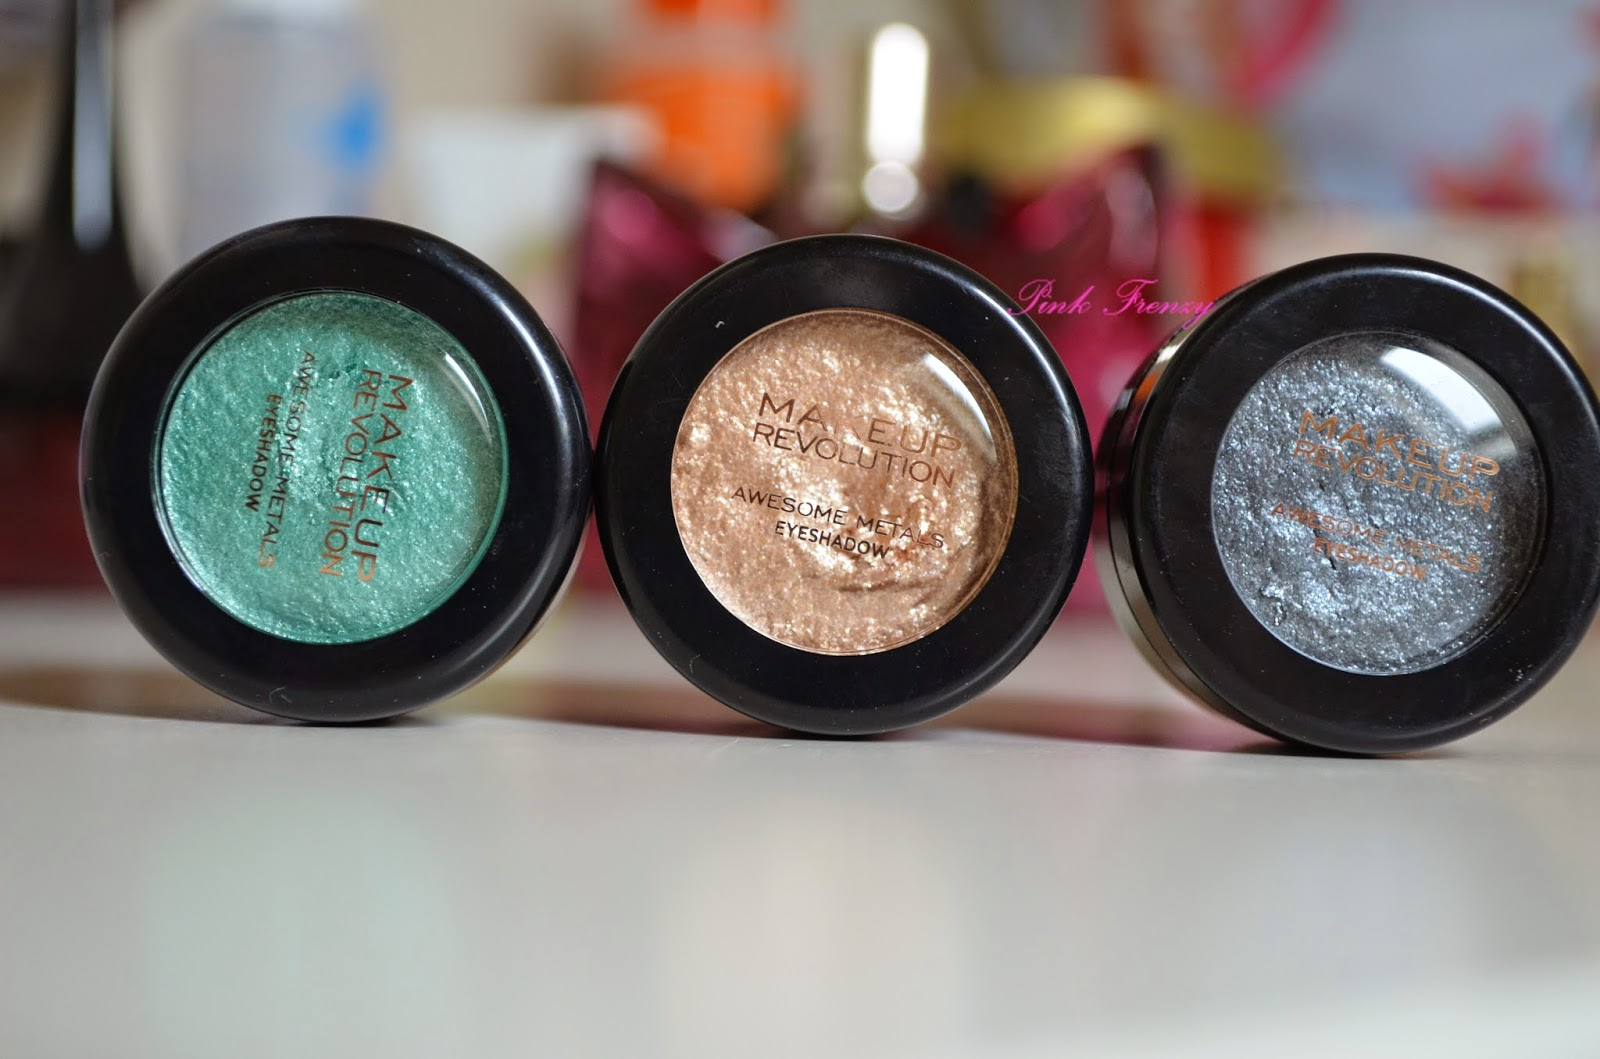 Review: Makeup Revolution Awesome Metals Eyeshadow ~ Pink Frenzy